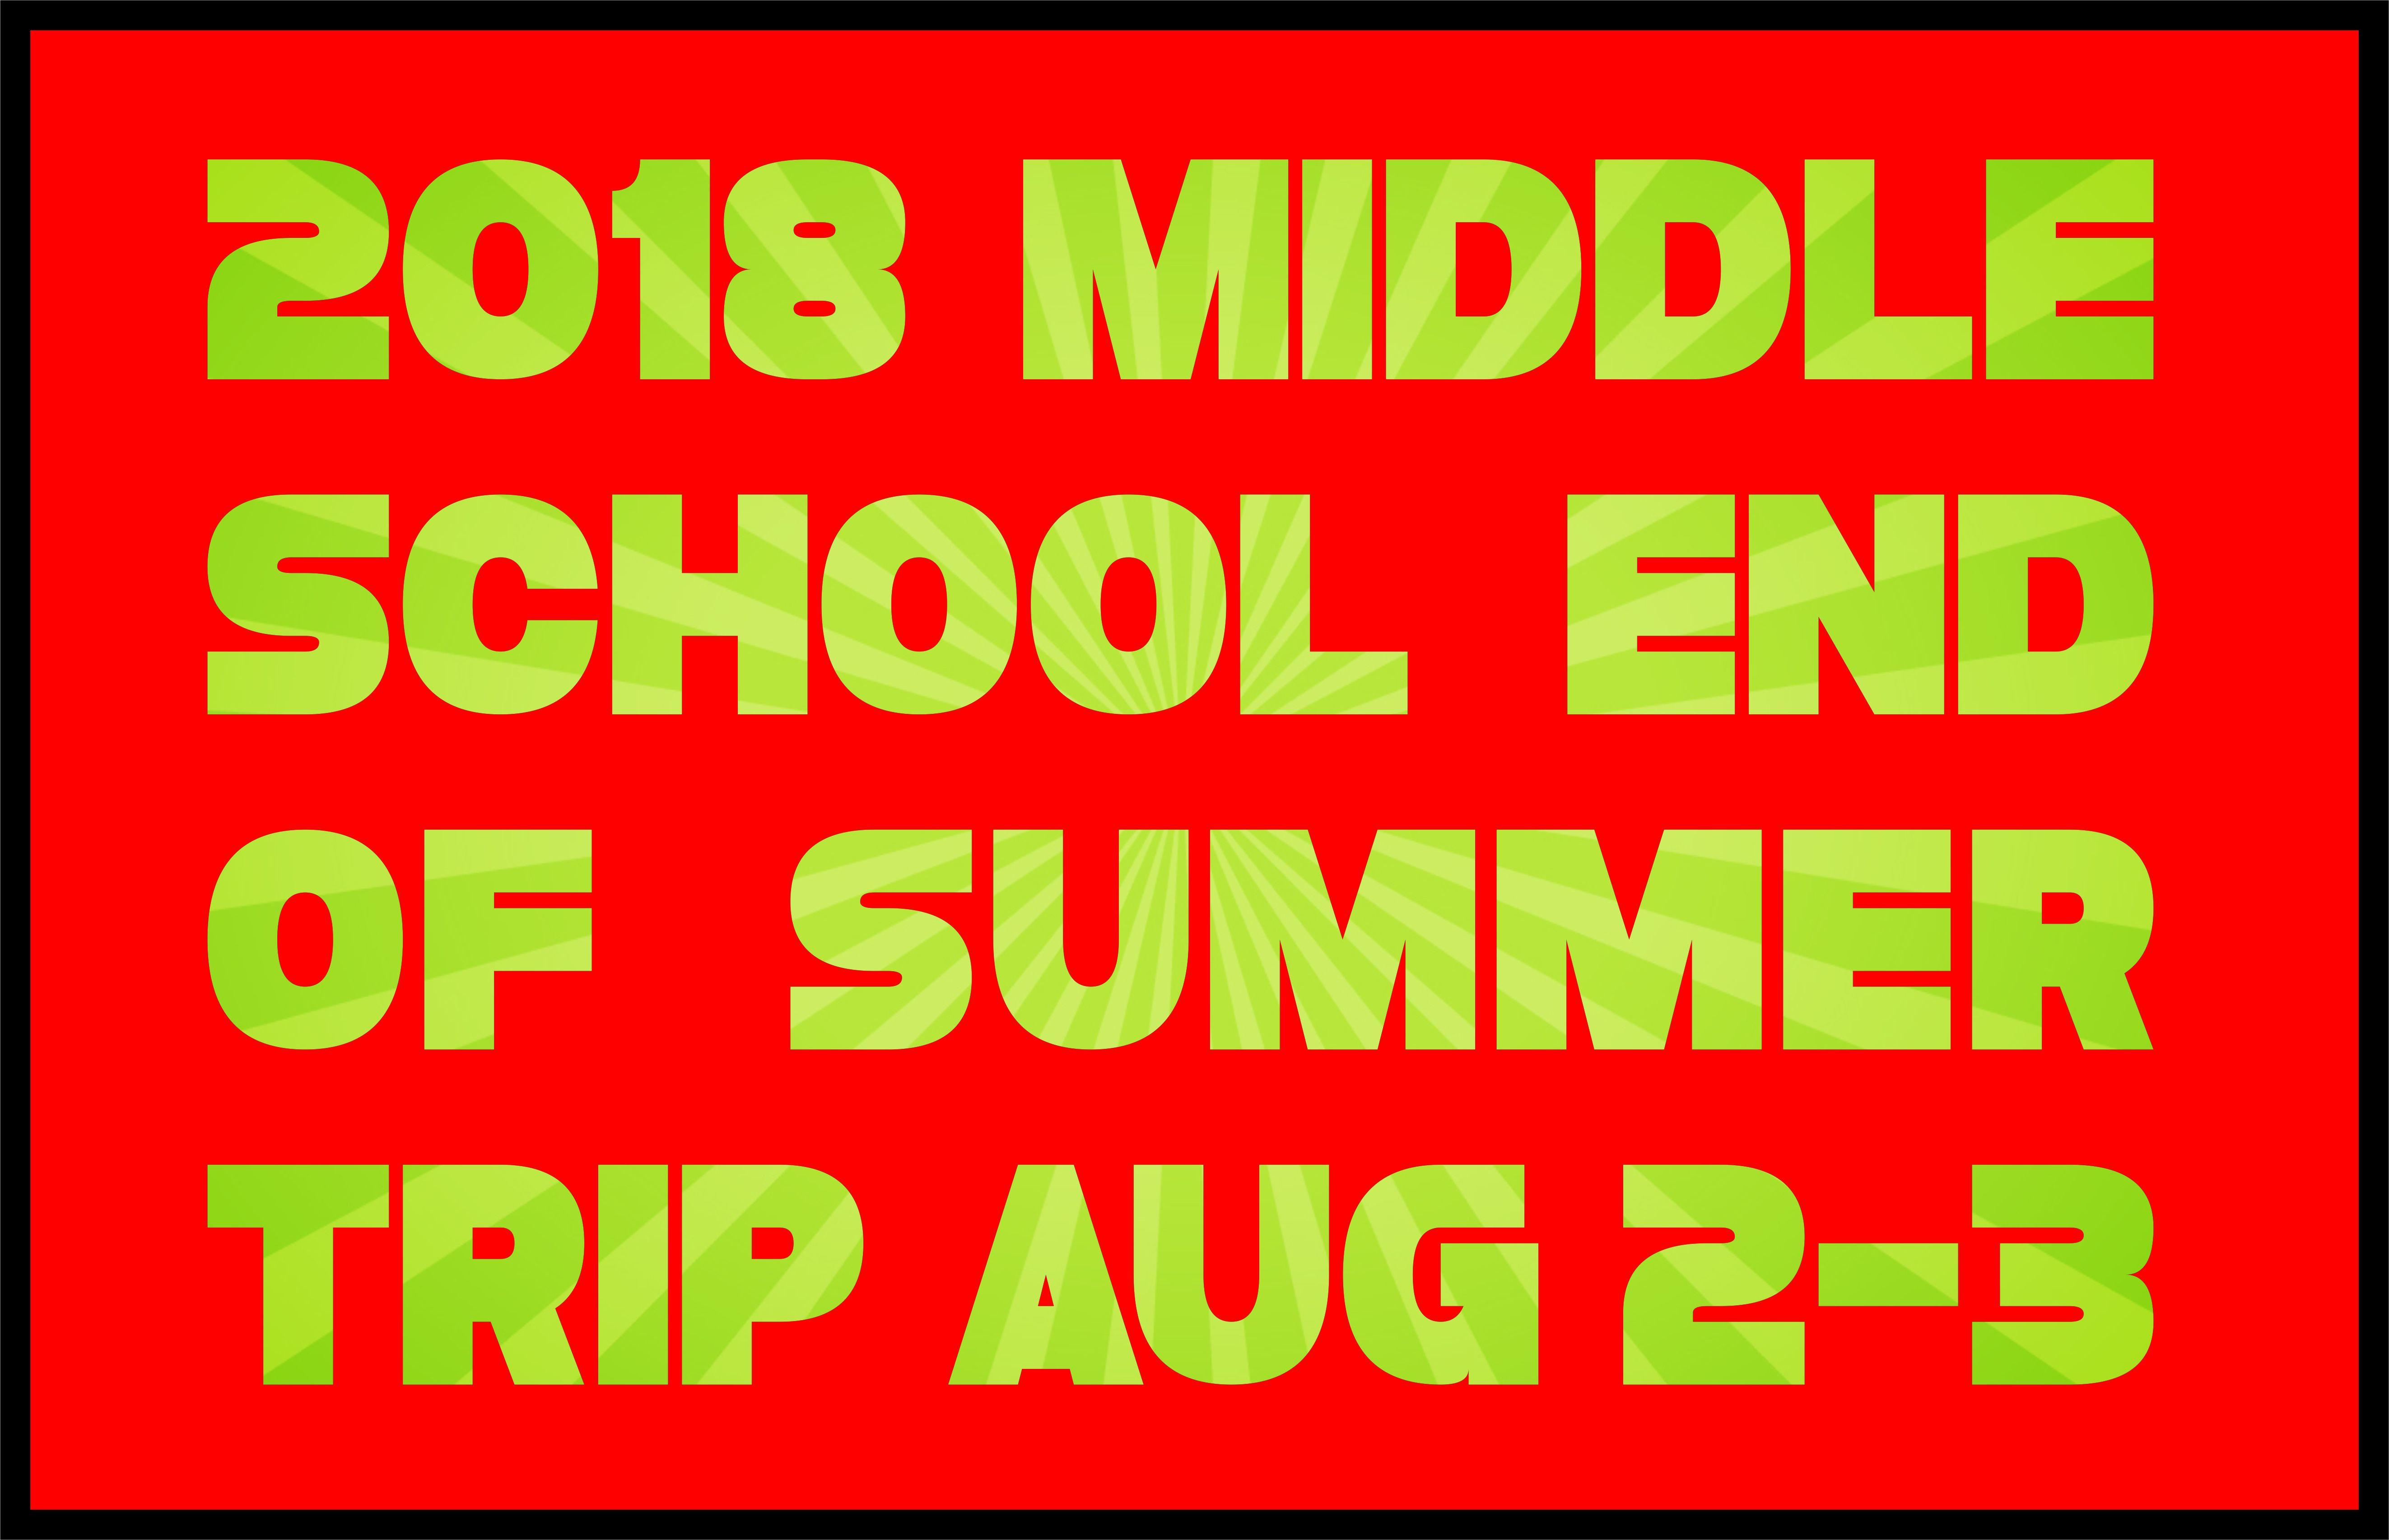 Middle school end of summer